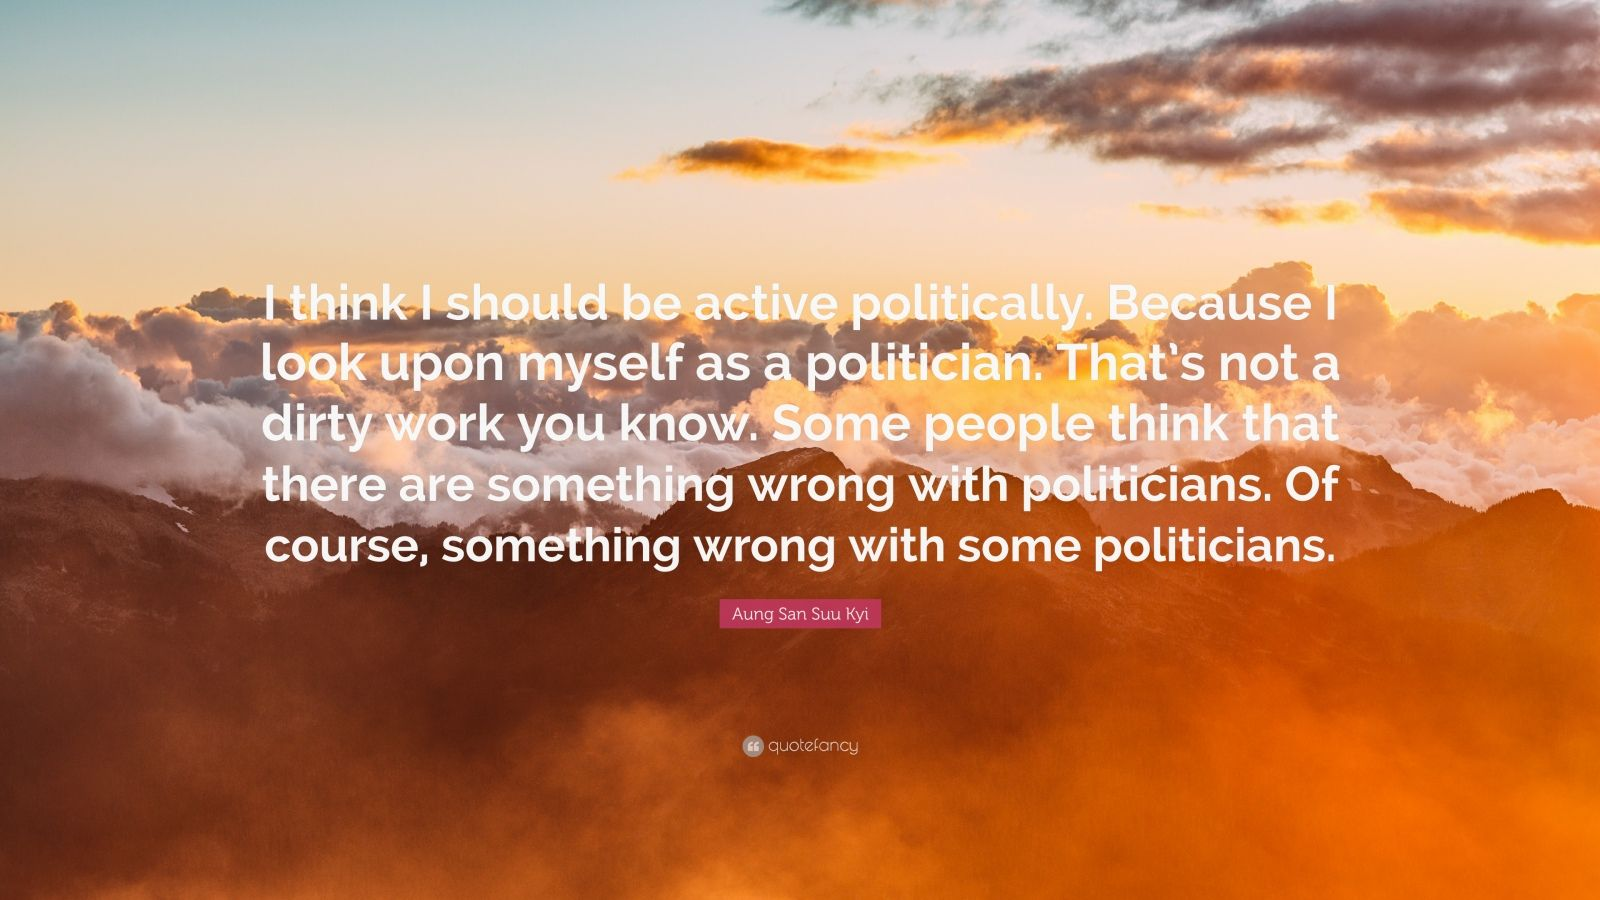 """Aung San Suu Kyi Quote: """"I think I should be active politically. Because I look upon myself as a politician. That's not a dirty work you know. Some people think that there are something wrong with politicians. Of course, something wrong with some politicians."""""""